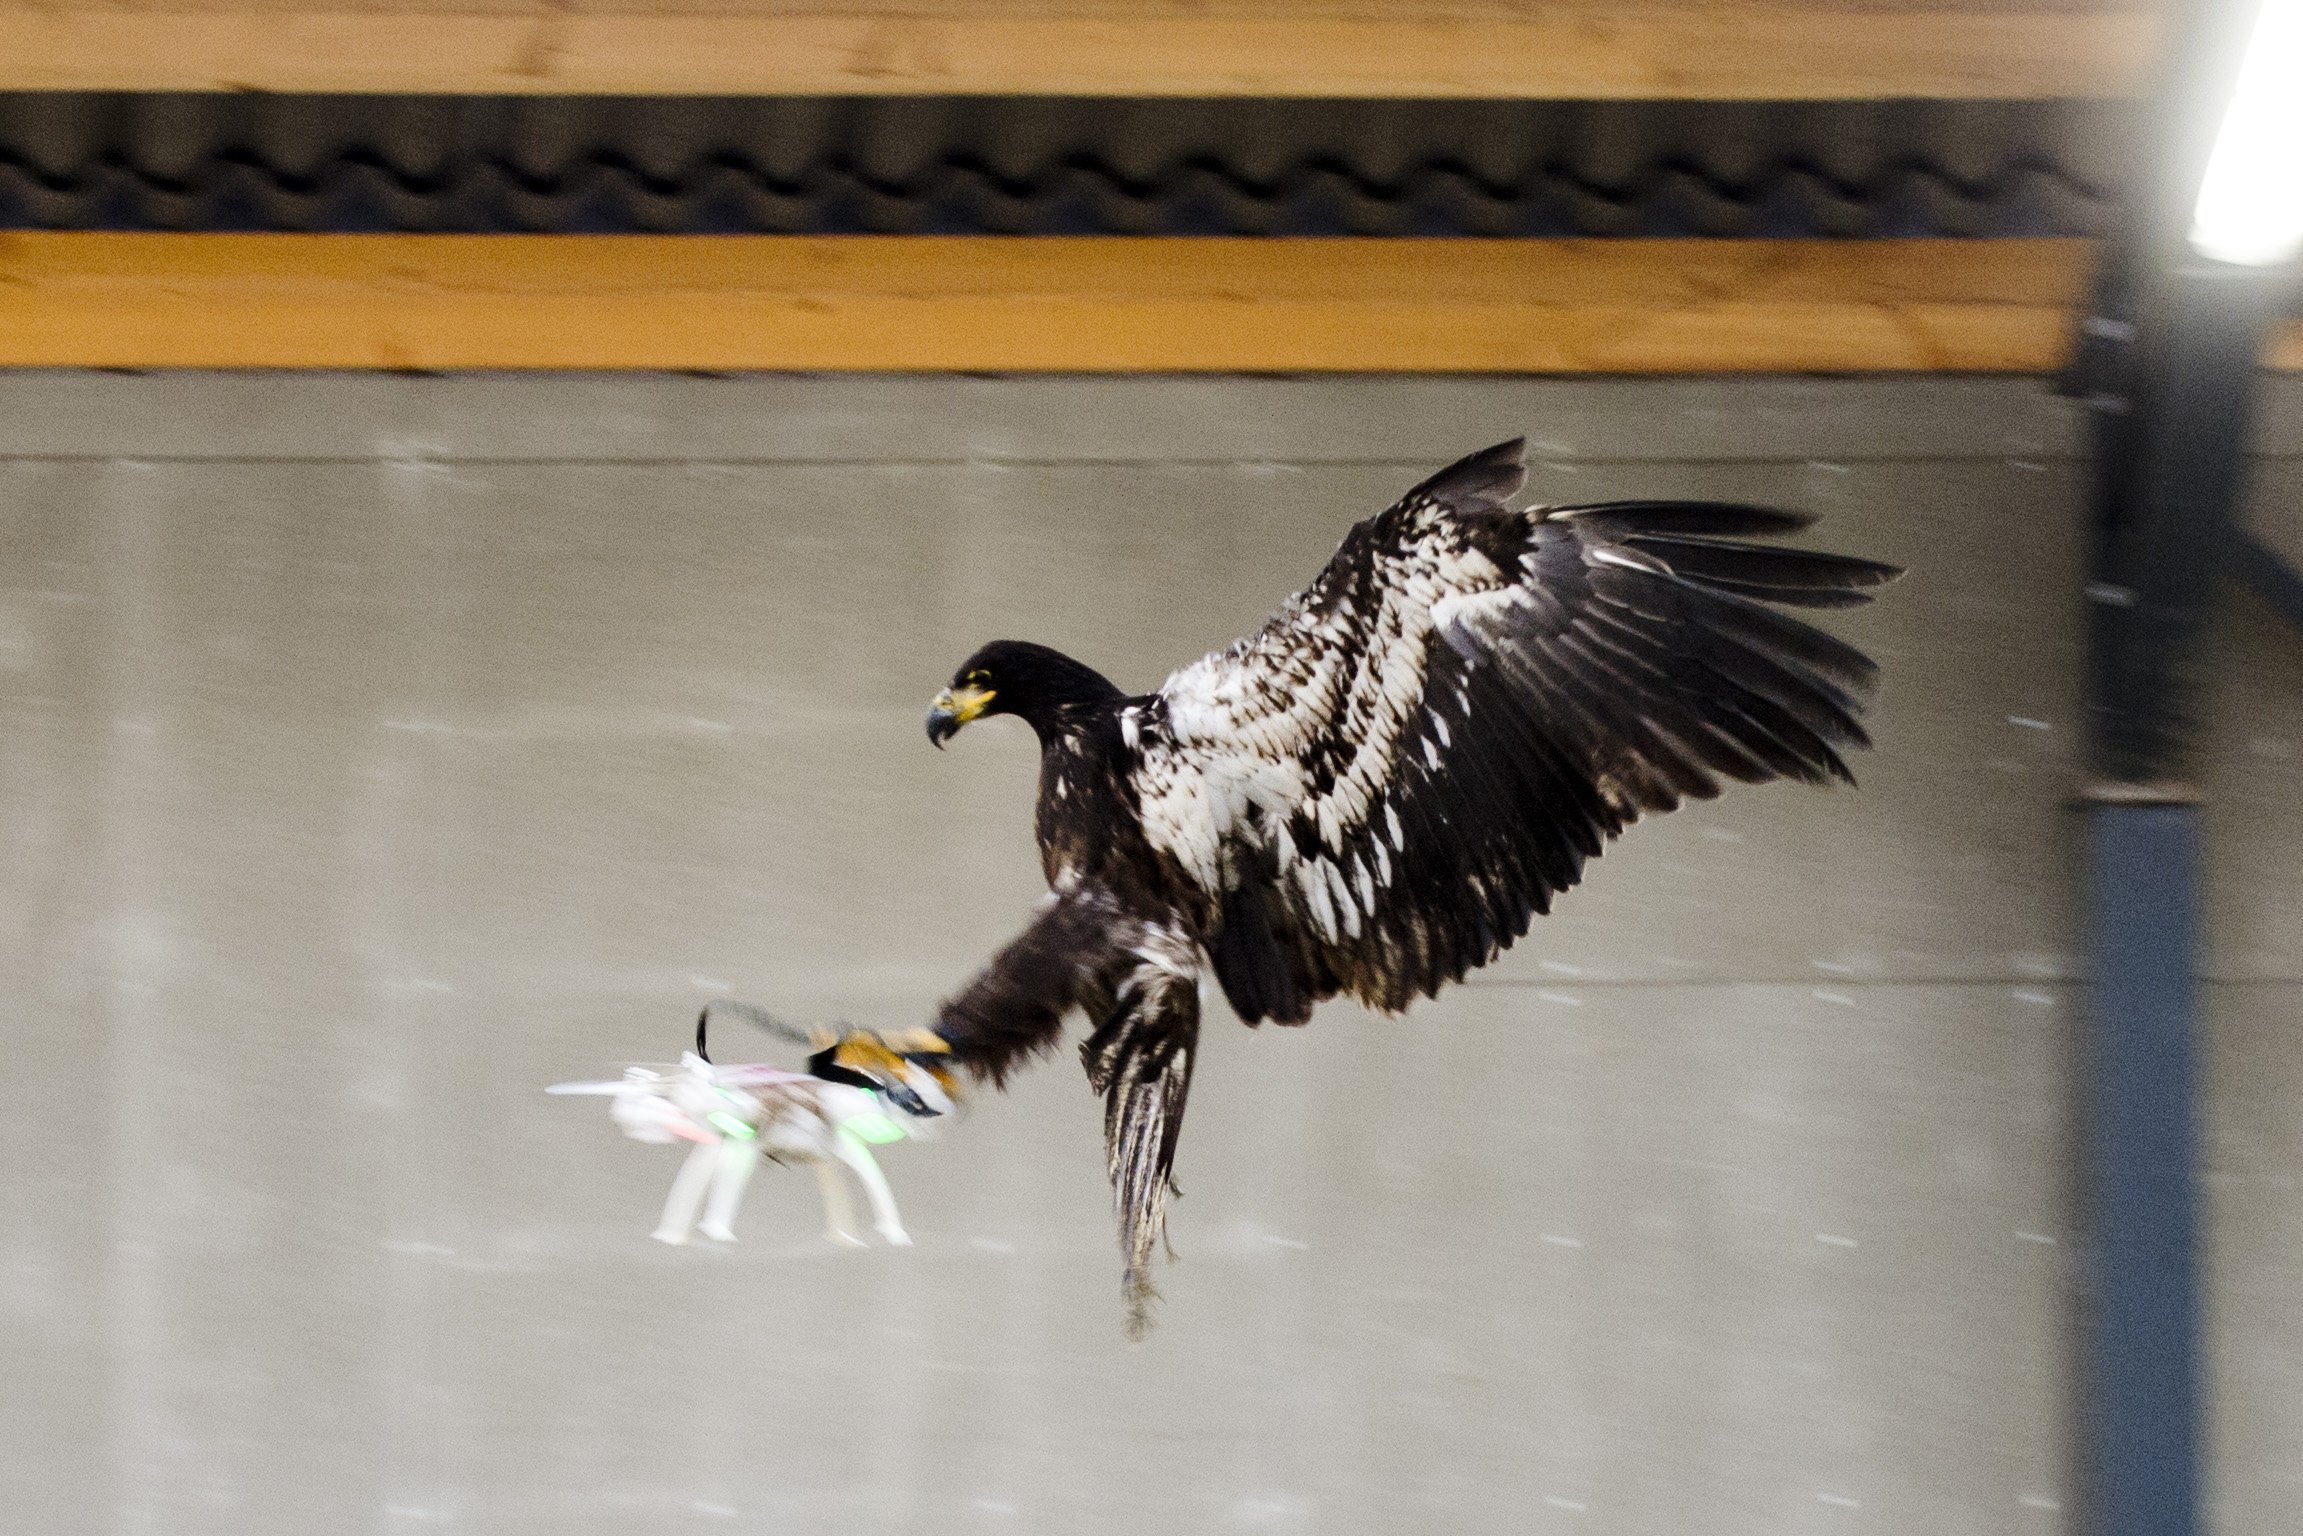 An eagle is seen gliding straight toward a drone before clutching it and dragging it to the ground in Rotterdam, Netherlands January 29, 2016, in this handout photo released by the Netherlands police to Reuters on February 1, 2016. Dutch police puzzling over how to remove drones that pose a public safety threat are testing a way to get the job done in one fell swoop: with trained eagles. REUTERS/Nederlands Politie/Handout via Reuters ATTENTION EDITORS - THIS PICTURE WAS PROVIDED BY A THIRD PARTY. REUTERS IS UNABLE TO INDEPENDENTLY VERIFY THE AUTHENTICITY, CONTENT, LOCATION OR DATE OF THIS IMAGE. EDITORIAL USE ONLY. NOT FOR SALE FOR MARKETING OR ADVERTISING CAMPAIGNS. NO RESALES. NO ARCHIVE. THIS PICTURE IS DISTRIBUTED EXACTLY AS RECEIVED BY REUTERS, AS A SERVICE TO CLIENTS TPX IMAGES OF THE DAY TPX IMAGES OF THE DAY TPX IMAGES OF THE DAY